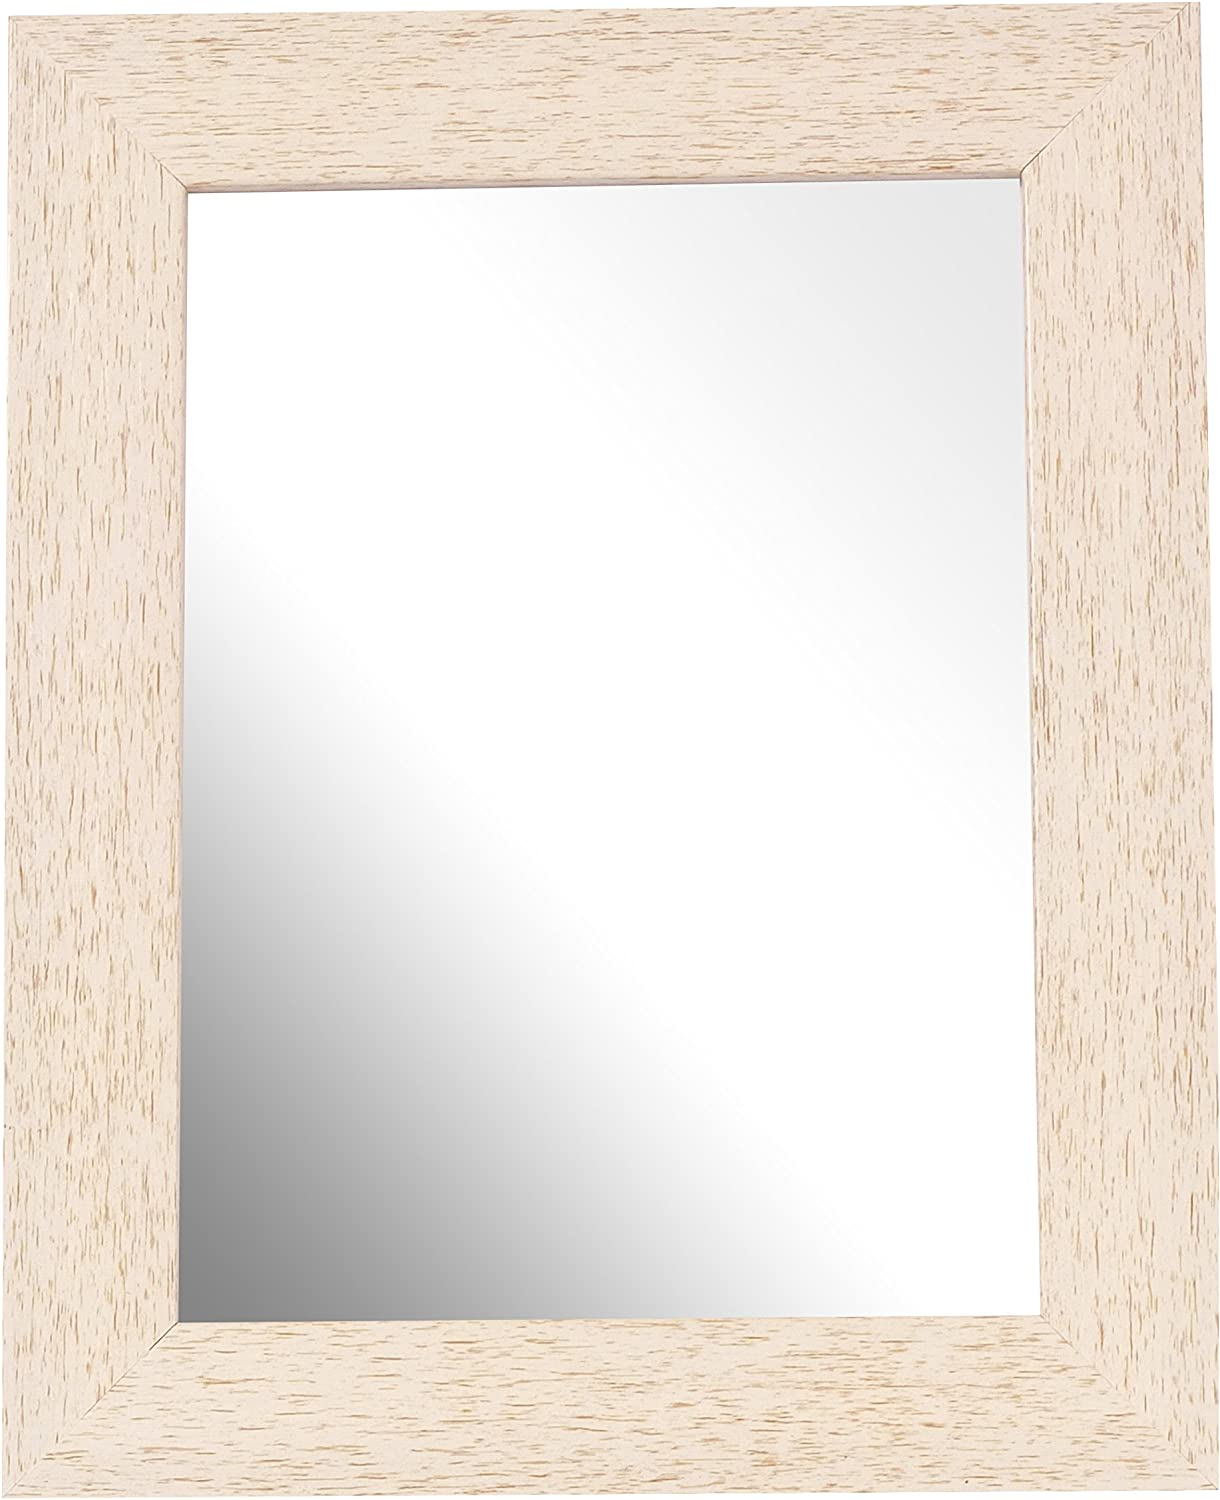 Inov8 British Made 10x8-inch Traditional Mirror, Pack of 2, Scoop Silver